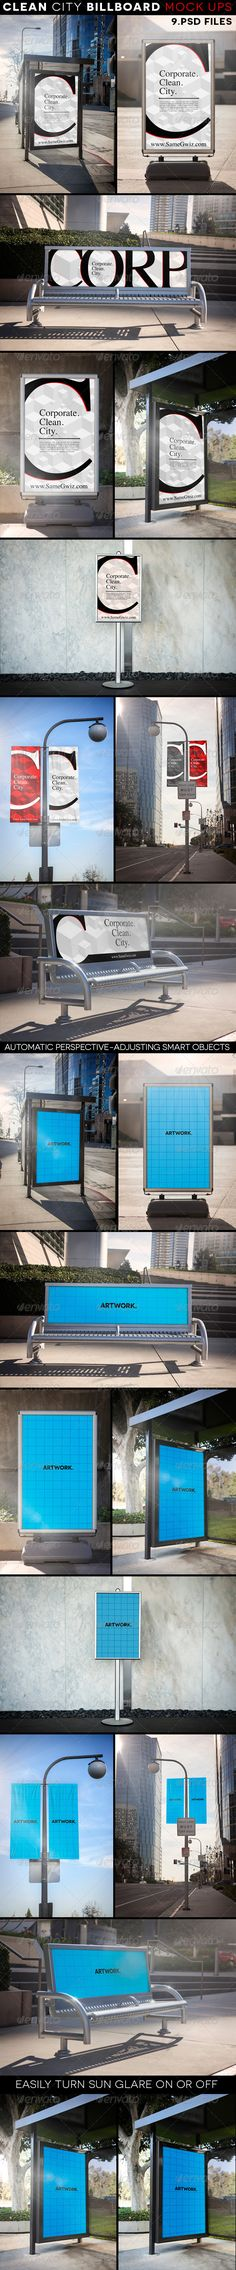 Clean City Advertising Billboard Mock-Ups Download here: https://graphicriver.net/item/clean-city-advertising-billboard-mockups/7070438?ref=KlitVogli